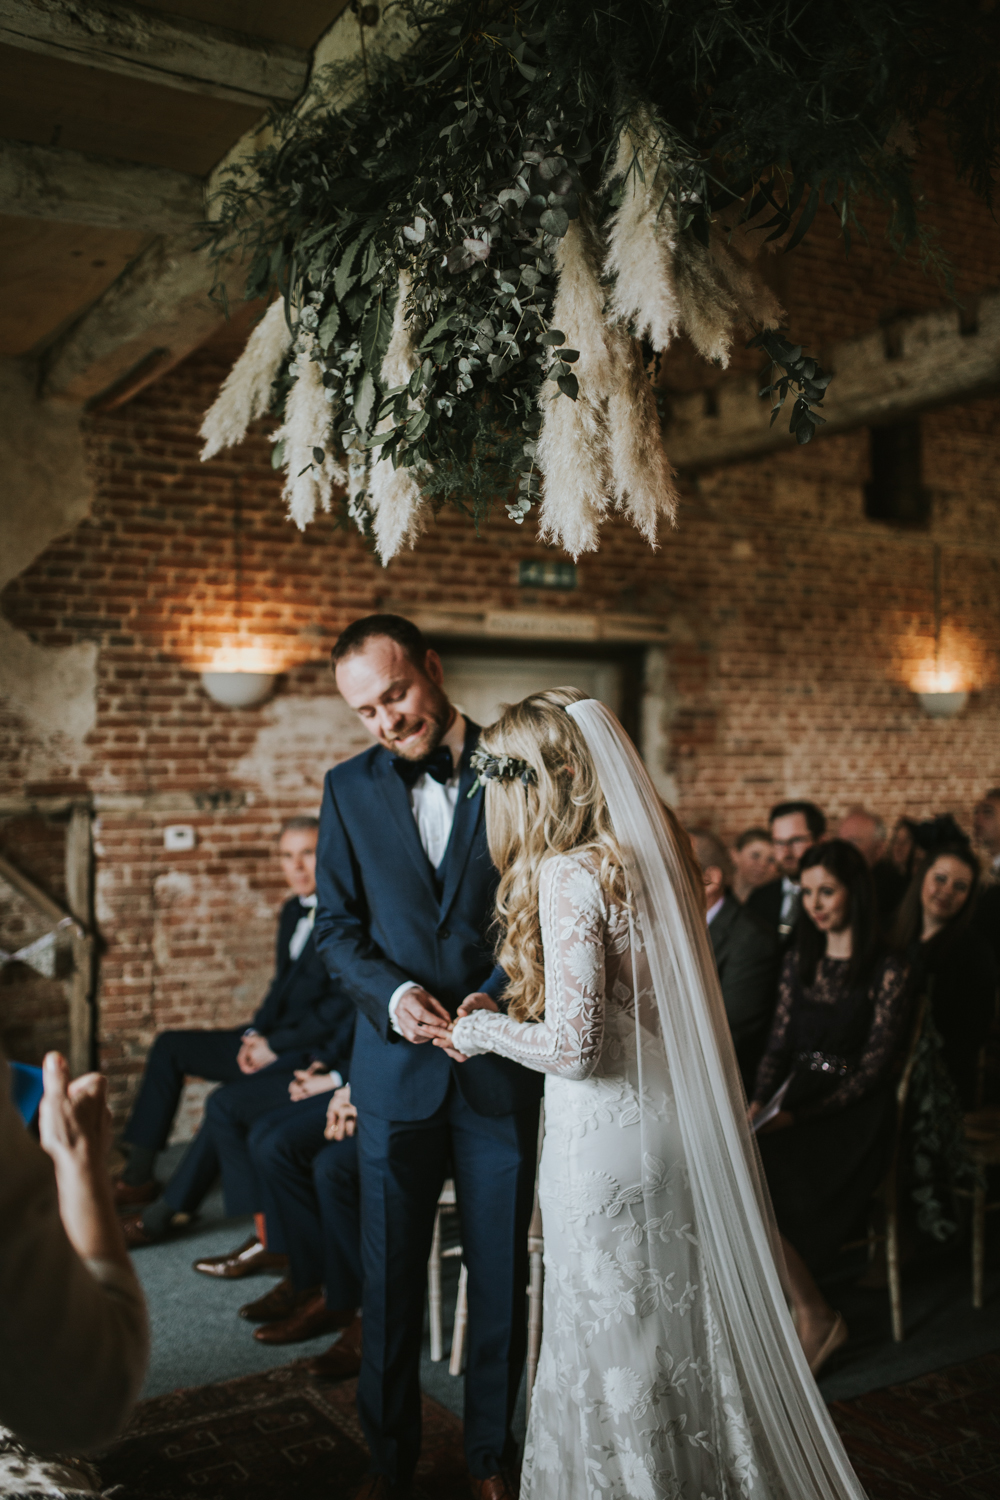 Rustic Barn Wedding At Godwick Hall With Pampas Grass Decor